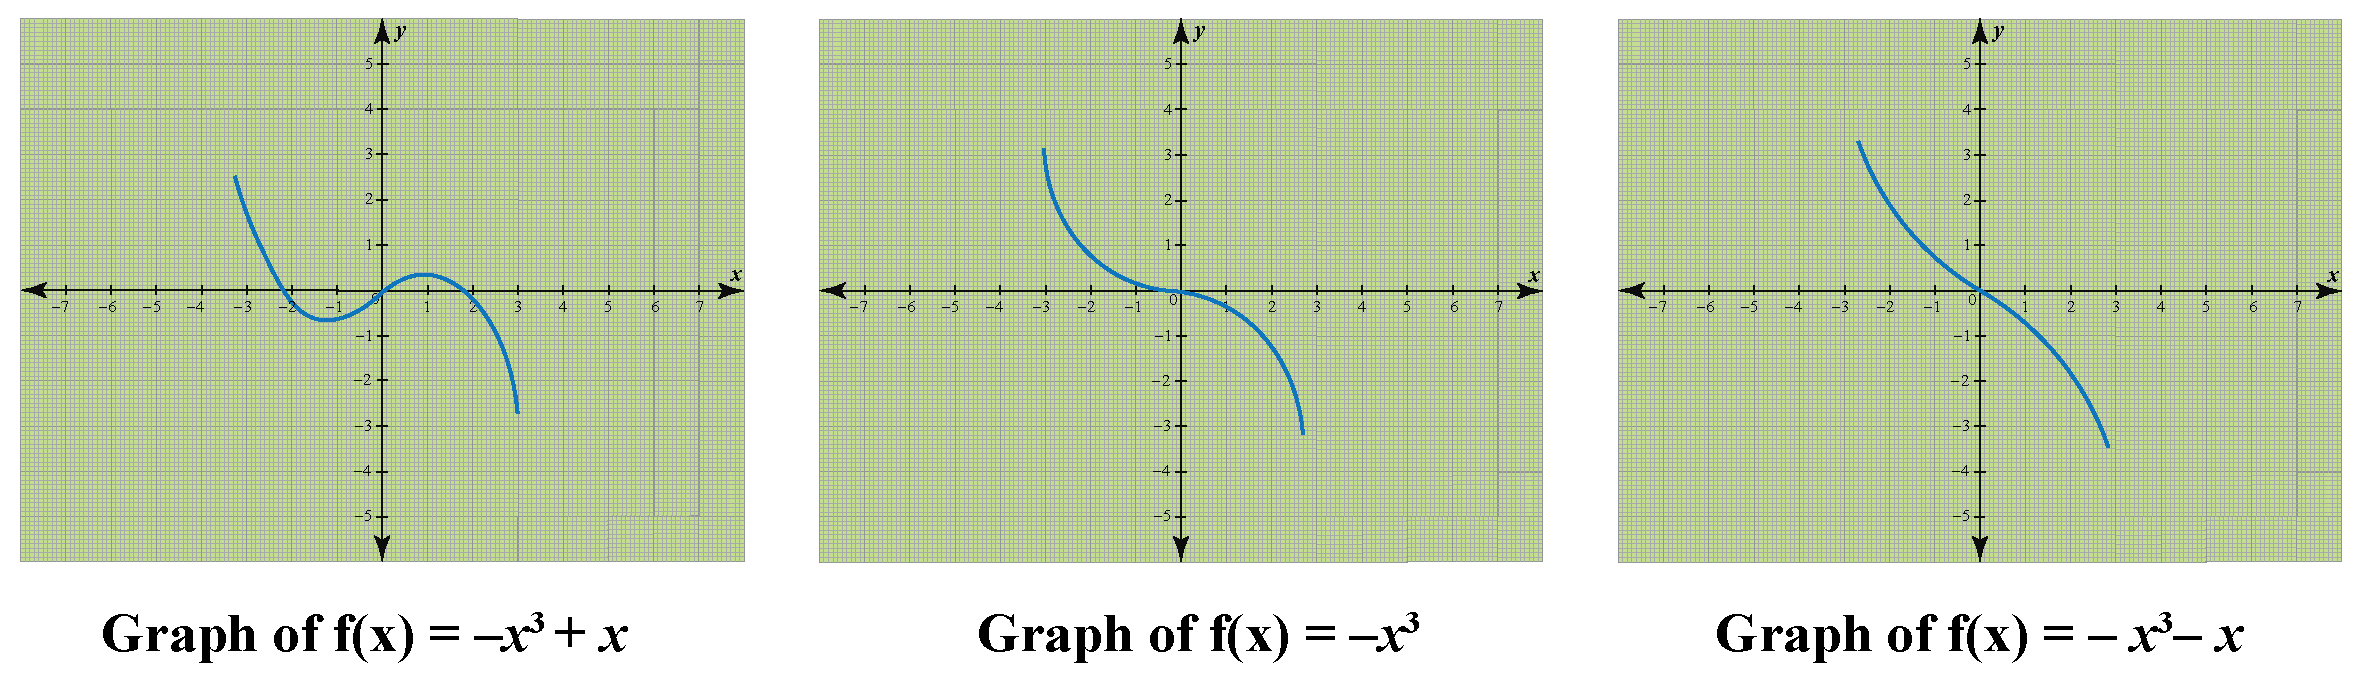 Cubic polynomial function on graph